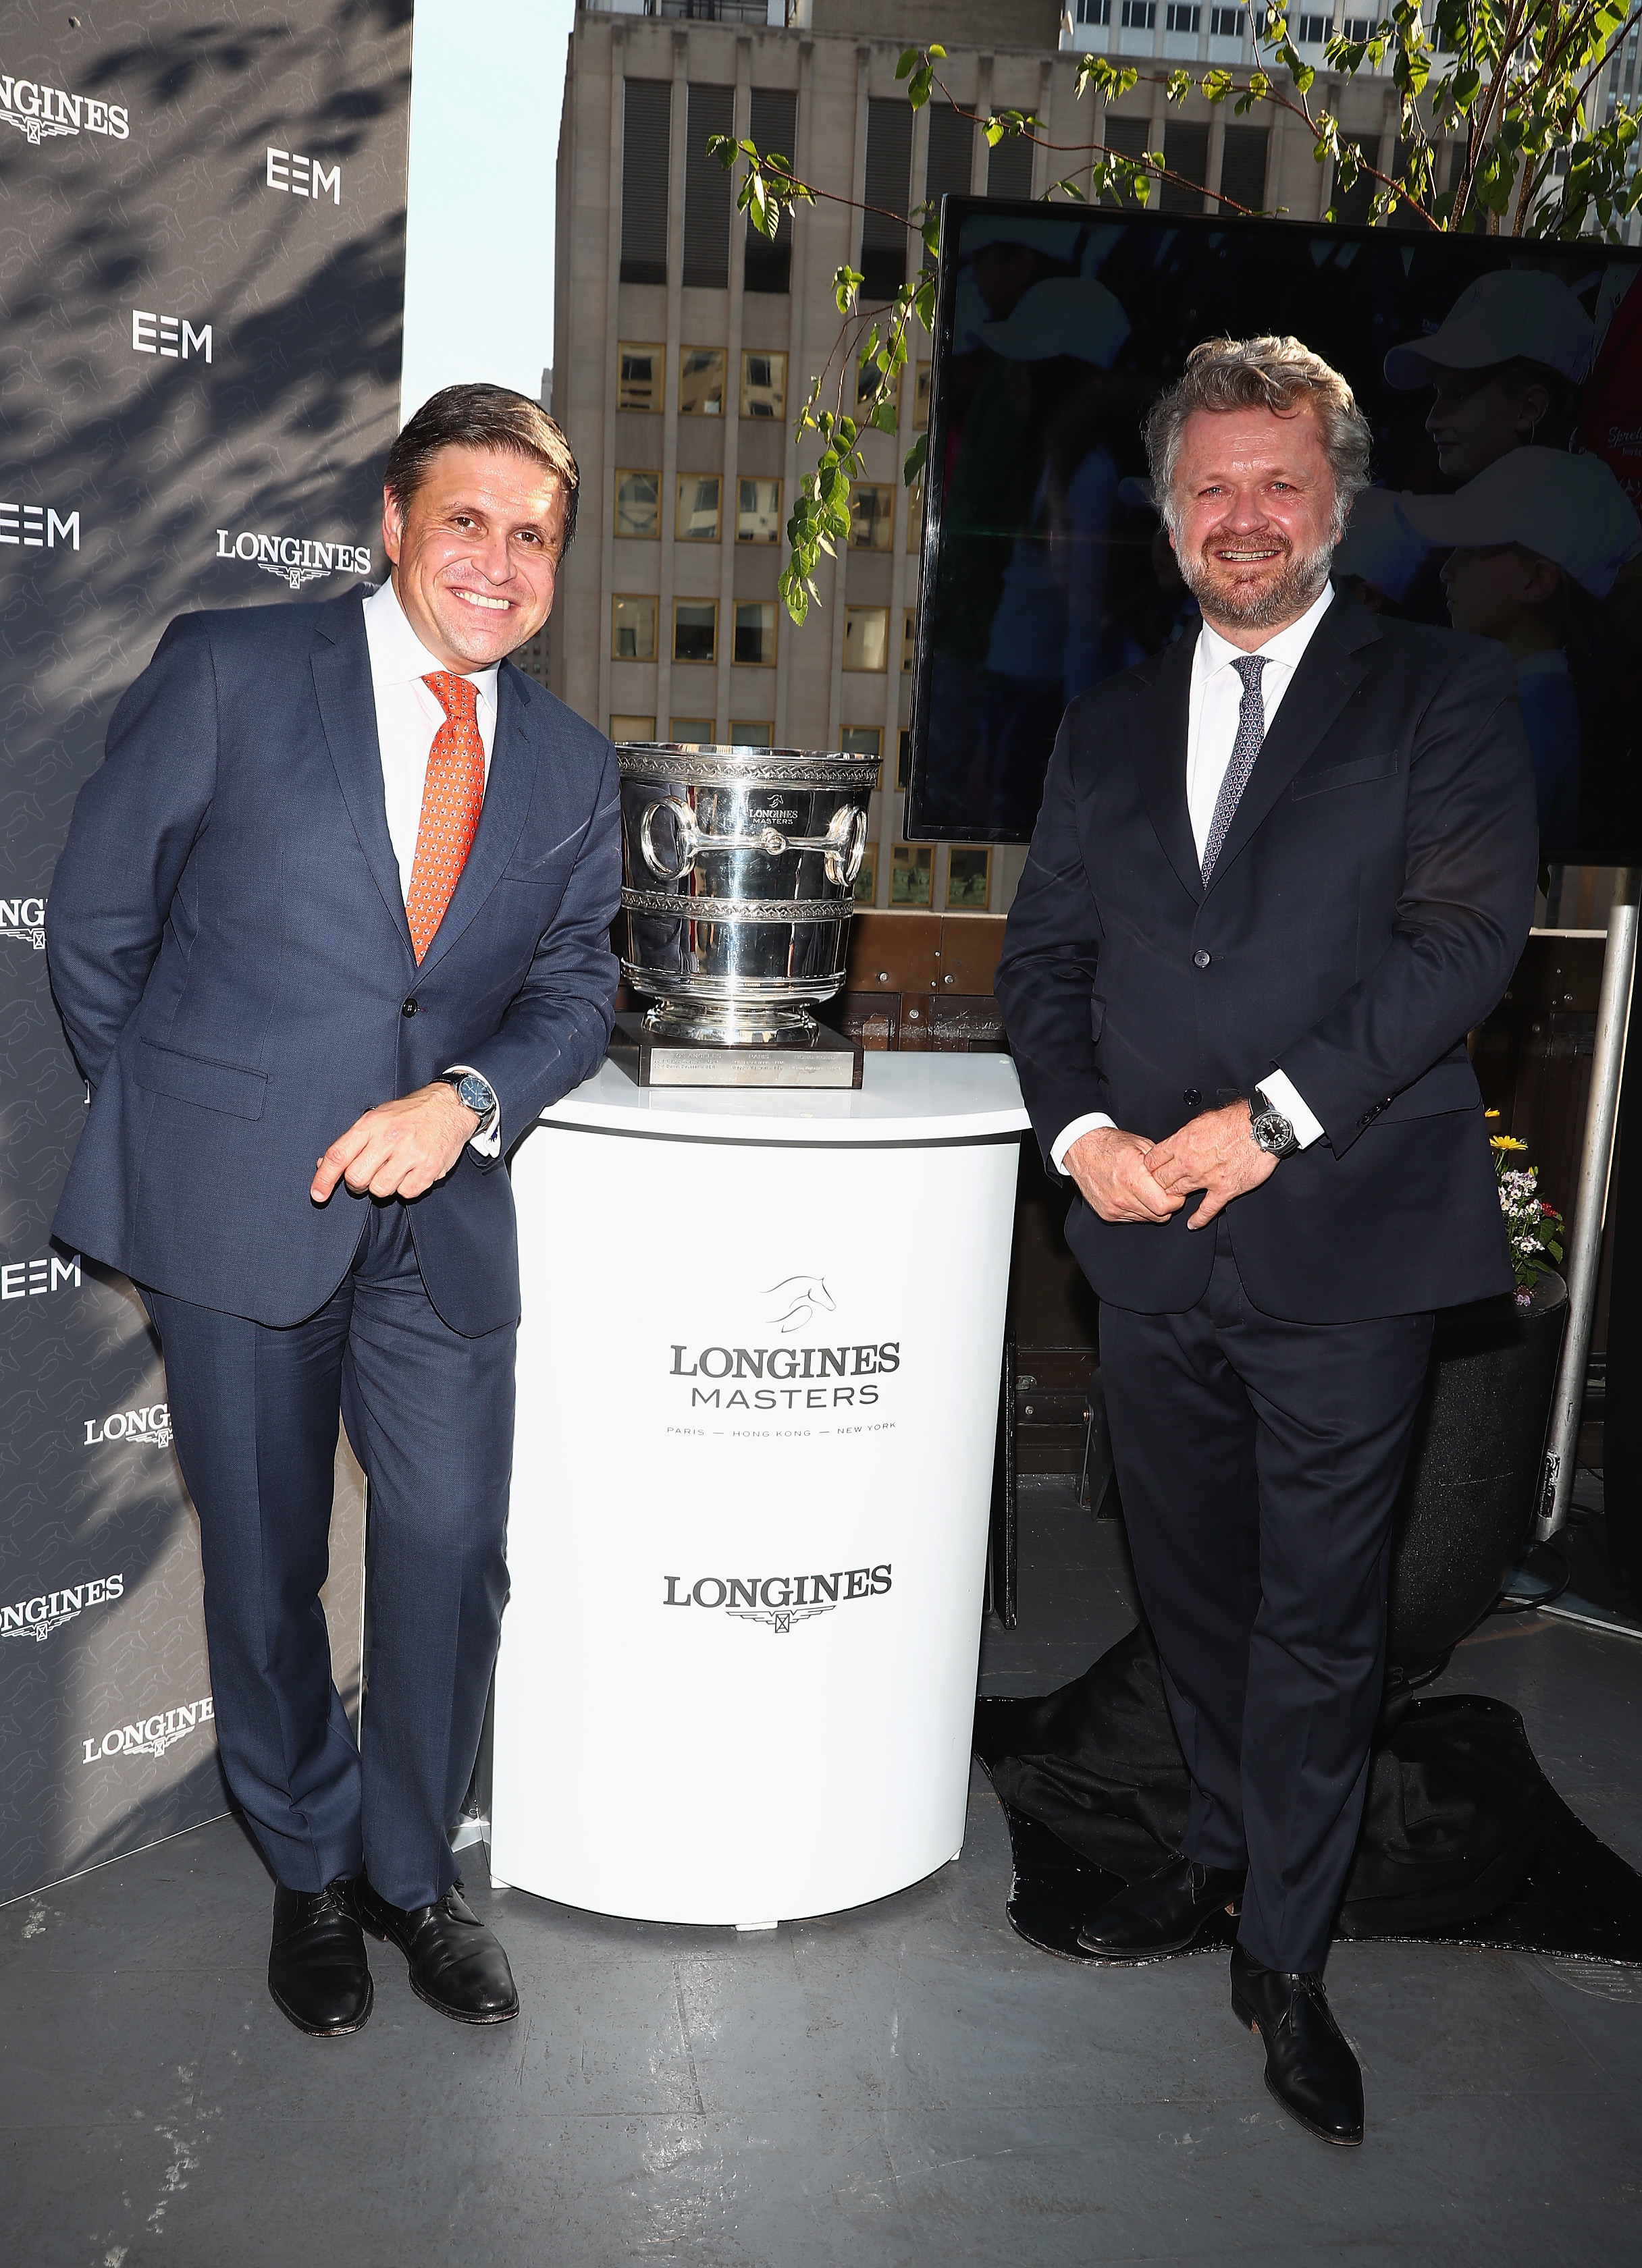 NEW YORK, NY - MAY 17: Juan-Carlos Capelli, Longines Vice President and Head of International Marketing and Christophe Ameeuw, Founder and CEO of EEM attend the Longines Masters launch party celebrating Series' epic move to New York at Salon de Ning on May 17, 2017 in New York City. (Photo by Astrid Stawiarz/Getty Images for Longines)